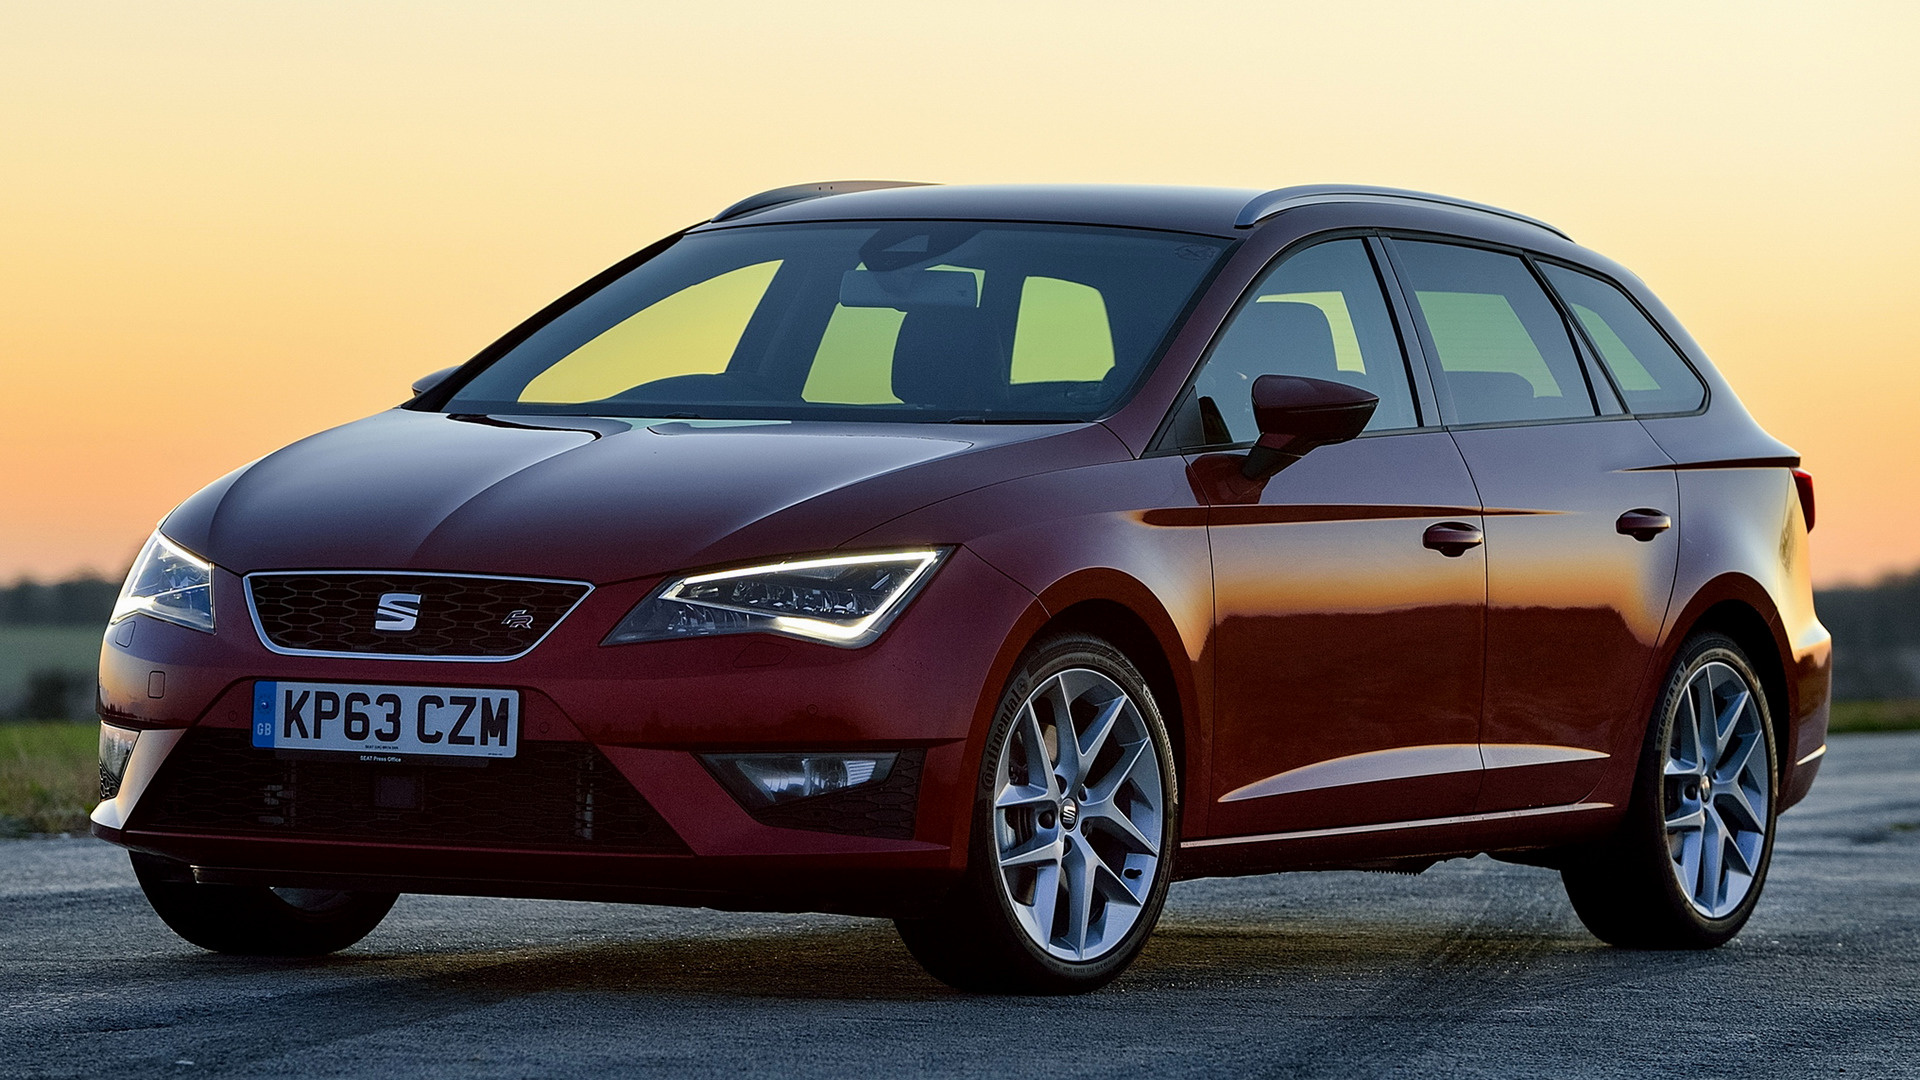 seat leon st fr 2014 uk wallpapers and hd images car pixel. Black Bedroom Furniture Sets. Home Design Ideas